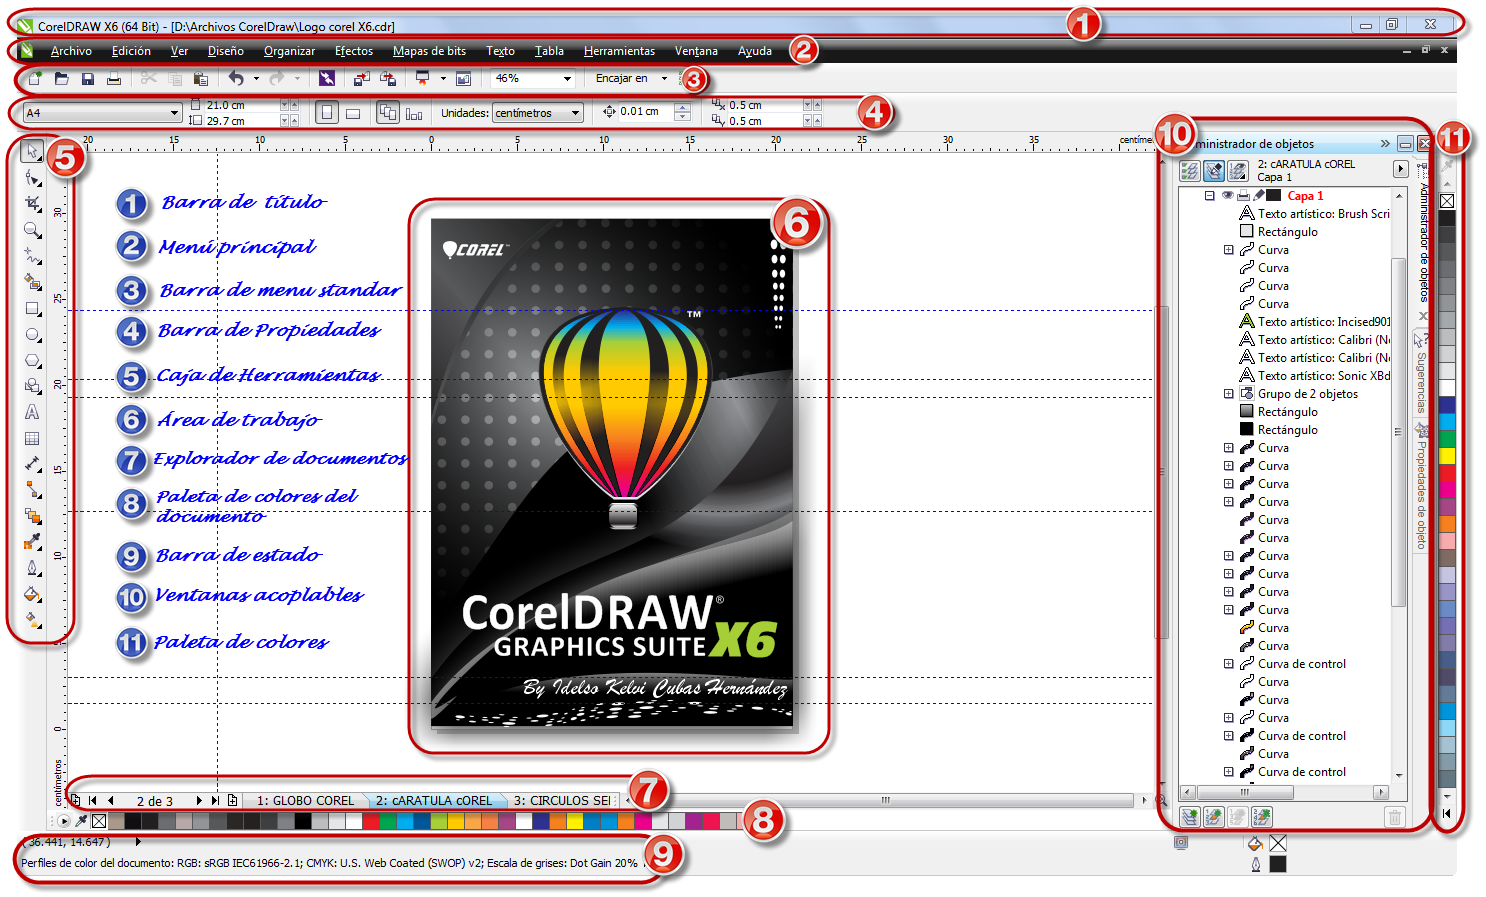 professional coreldraw essay Free information technology essays the vector graphic software i am going to be comparing is coreldraw with the bitmap graphic software below it is ubuntu based and contains many tools to create a good animation as well as attraction videos, inspiring music, tv advertisements, games and professional websites.